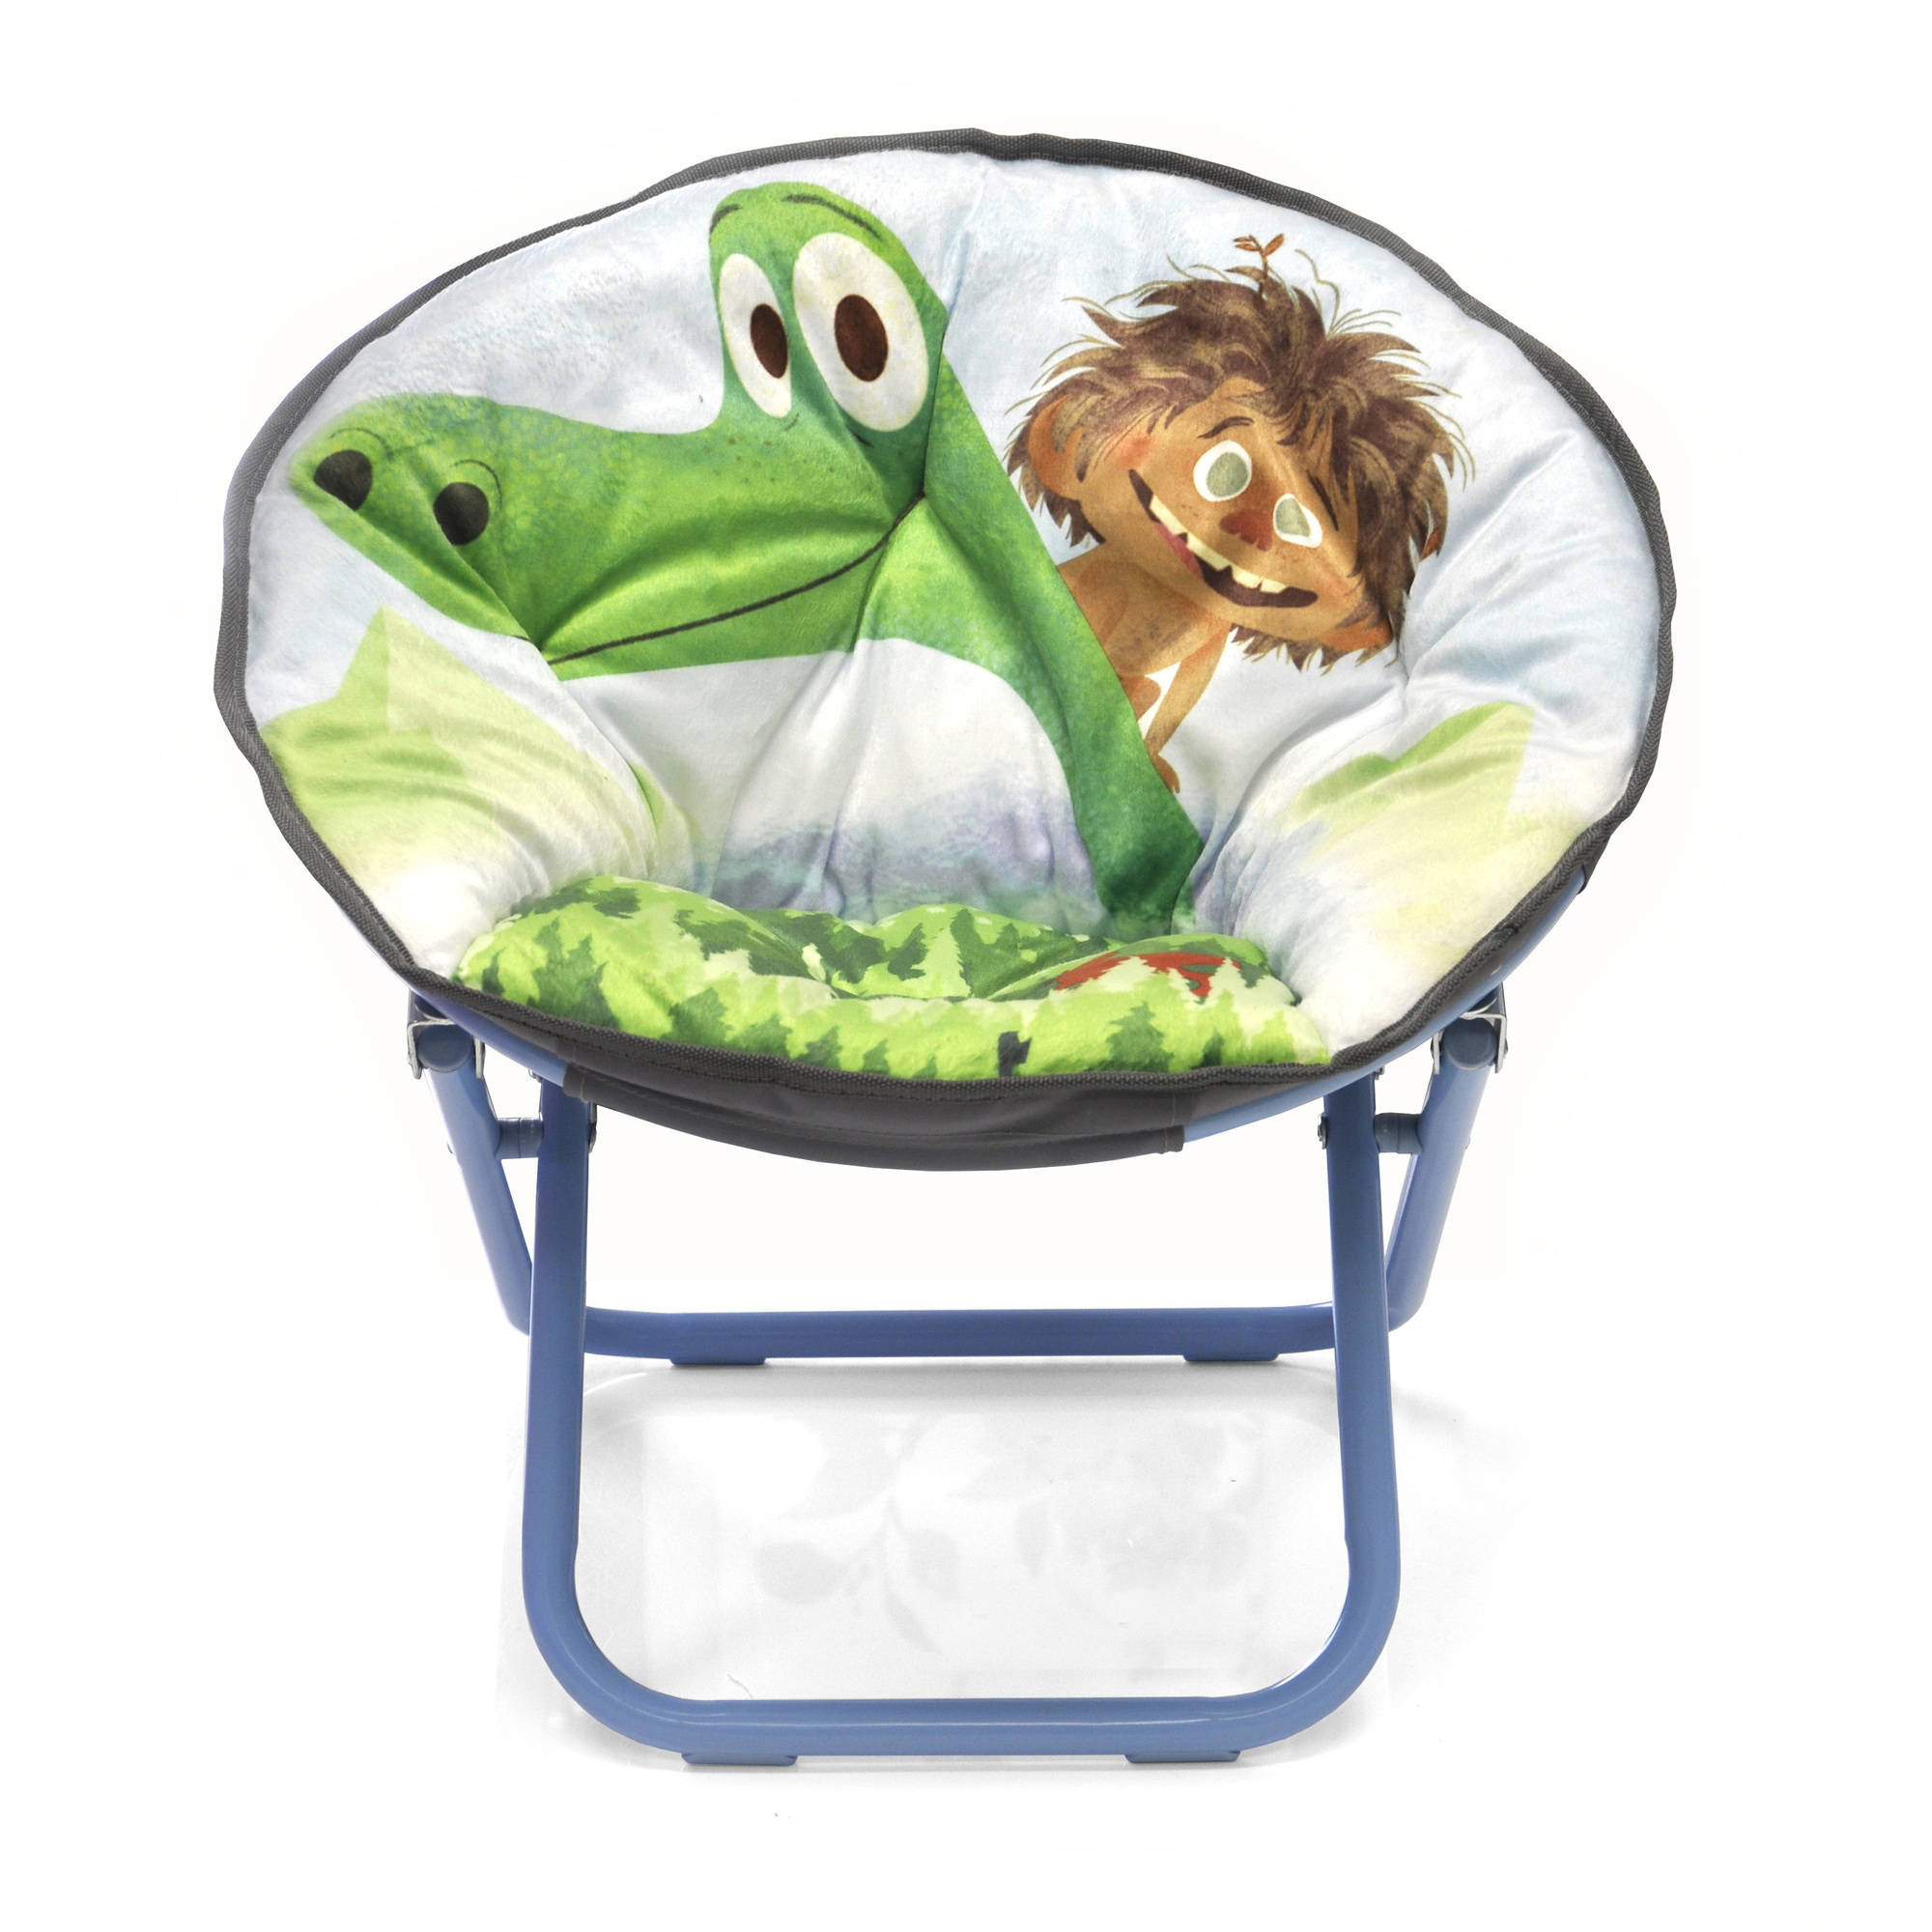 Good Dinosaur Mini Saucer Chair